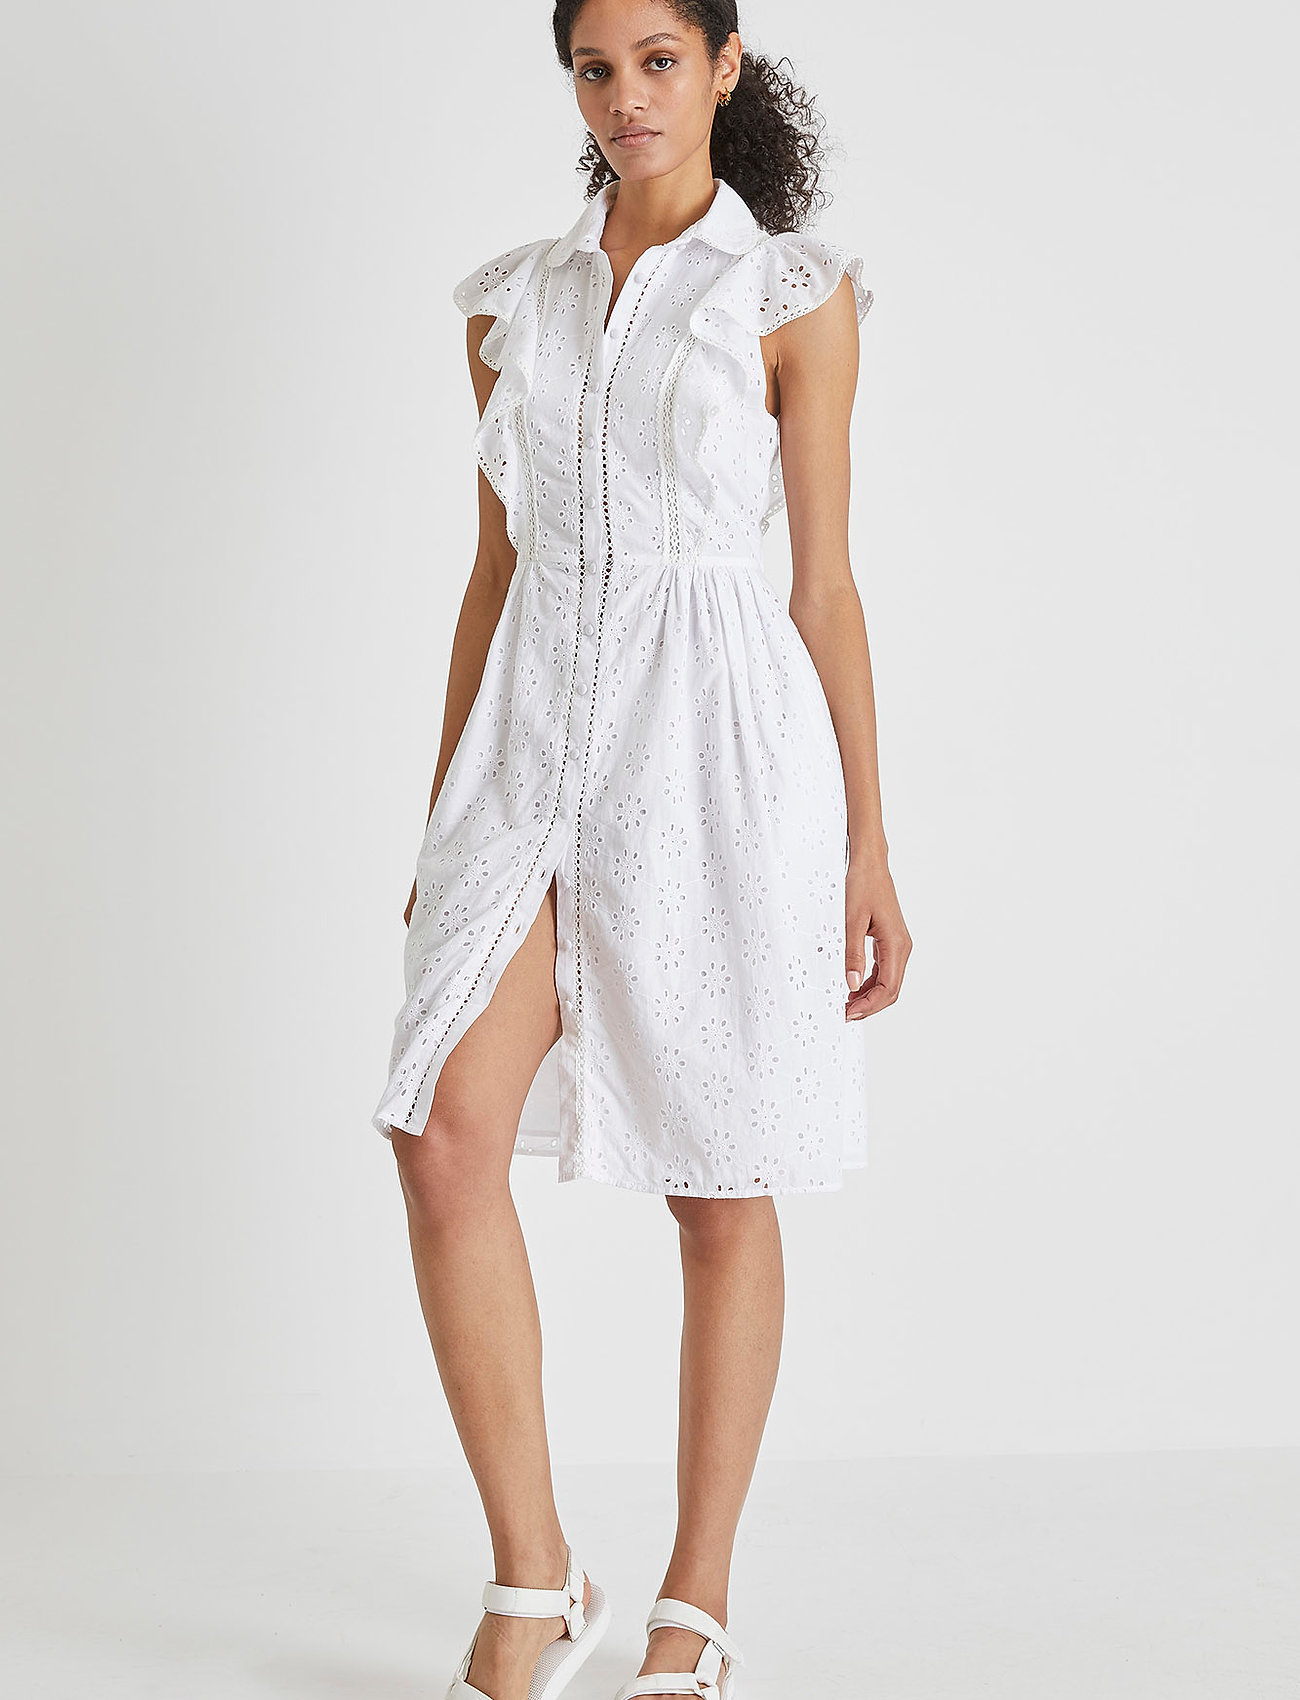 French Connection - DUNA LAWN EMBROIDERY DRESS - sommerkjoler - summer white - 0